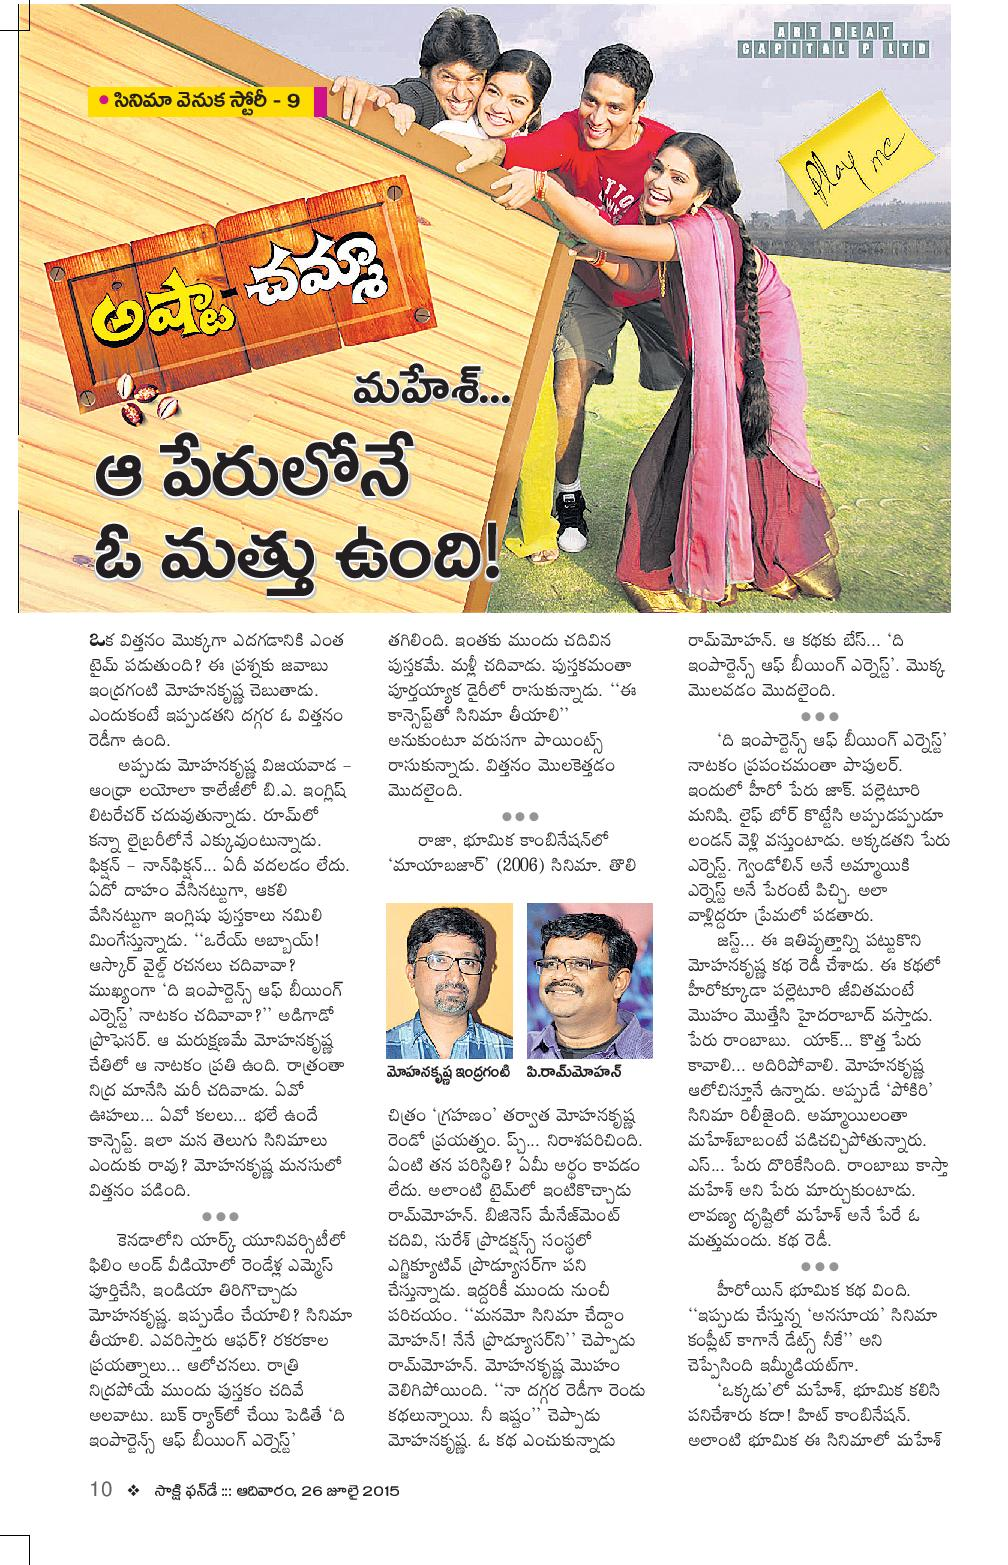 Cinema Venuka Story_Asta Chamma_Funday (26-7-2015)-page-001